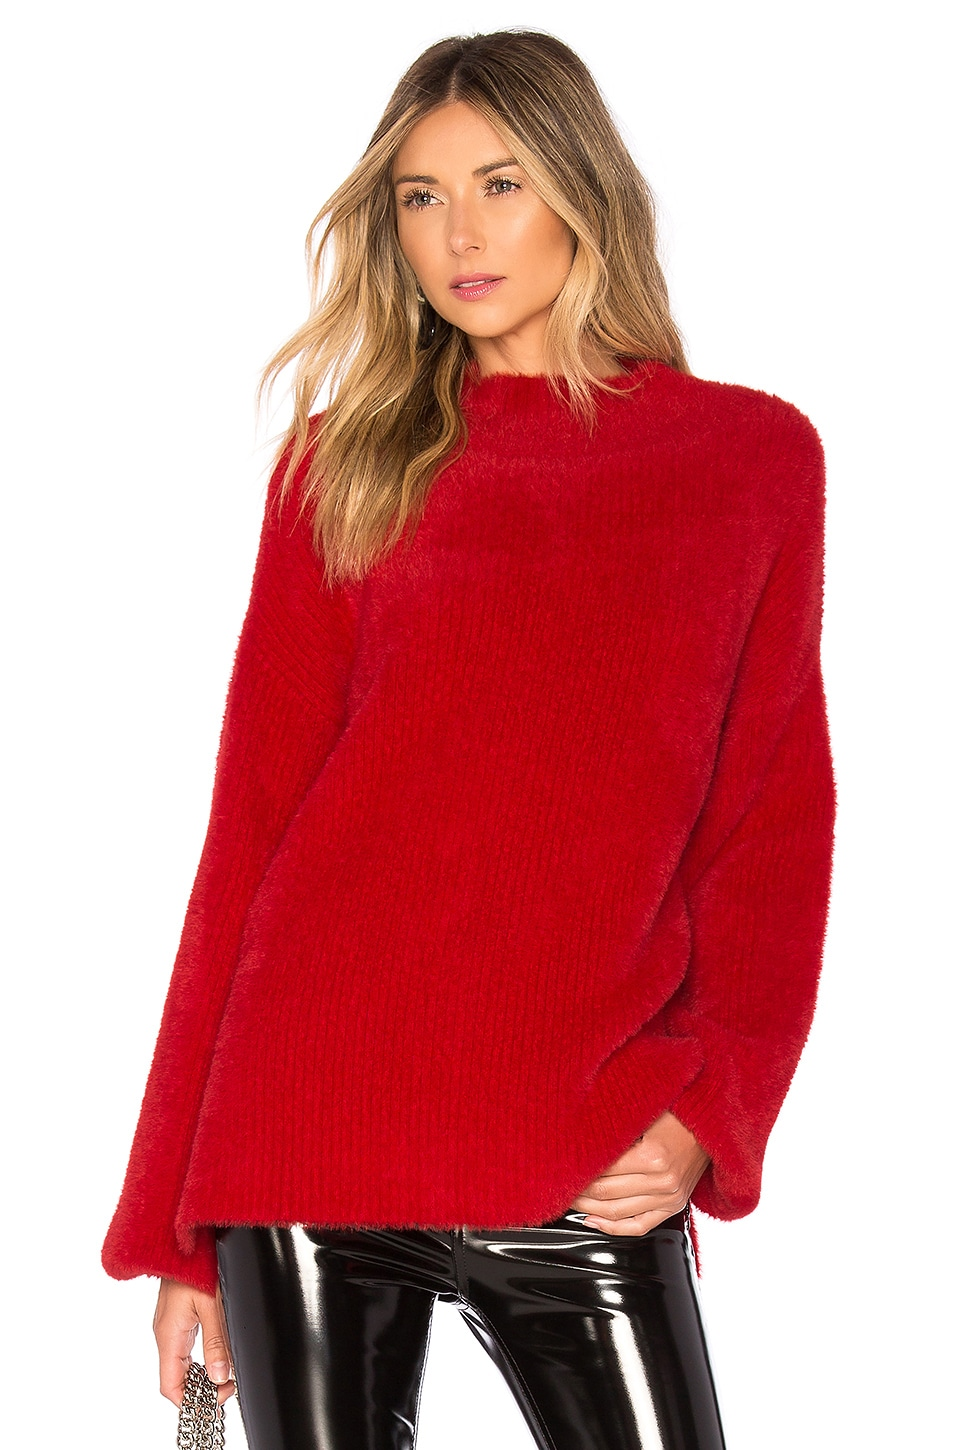 L'Academie Kyla Sweater in Red